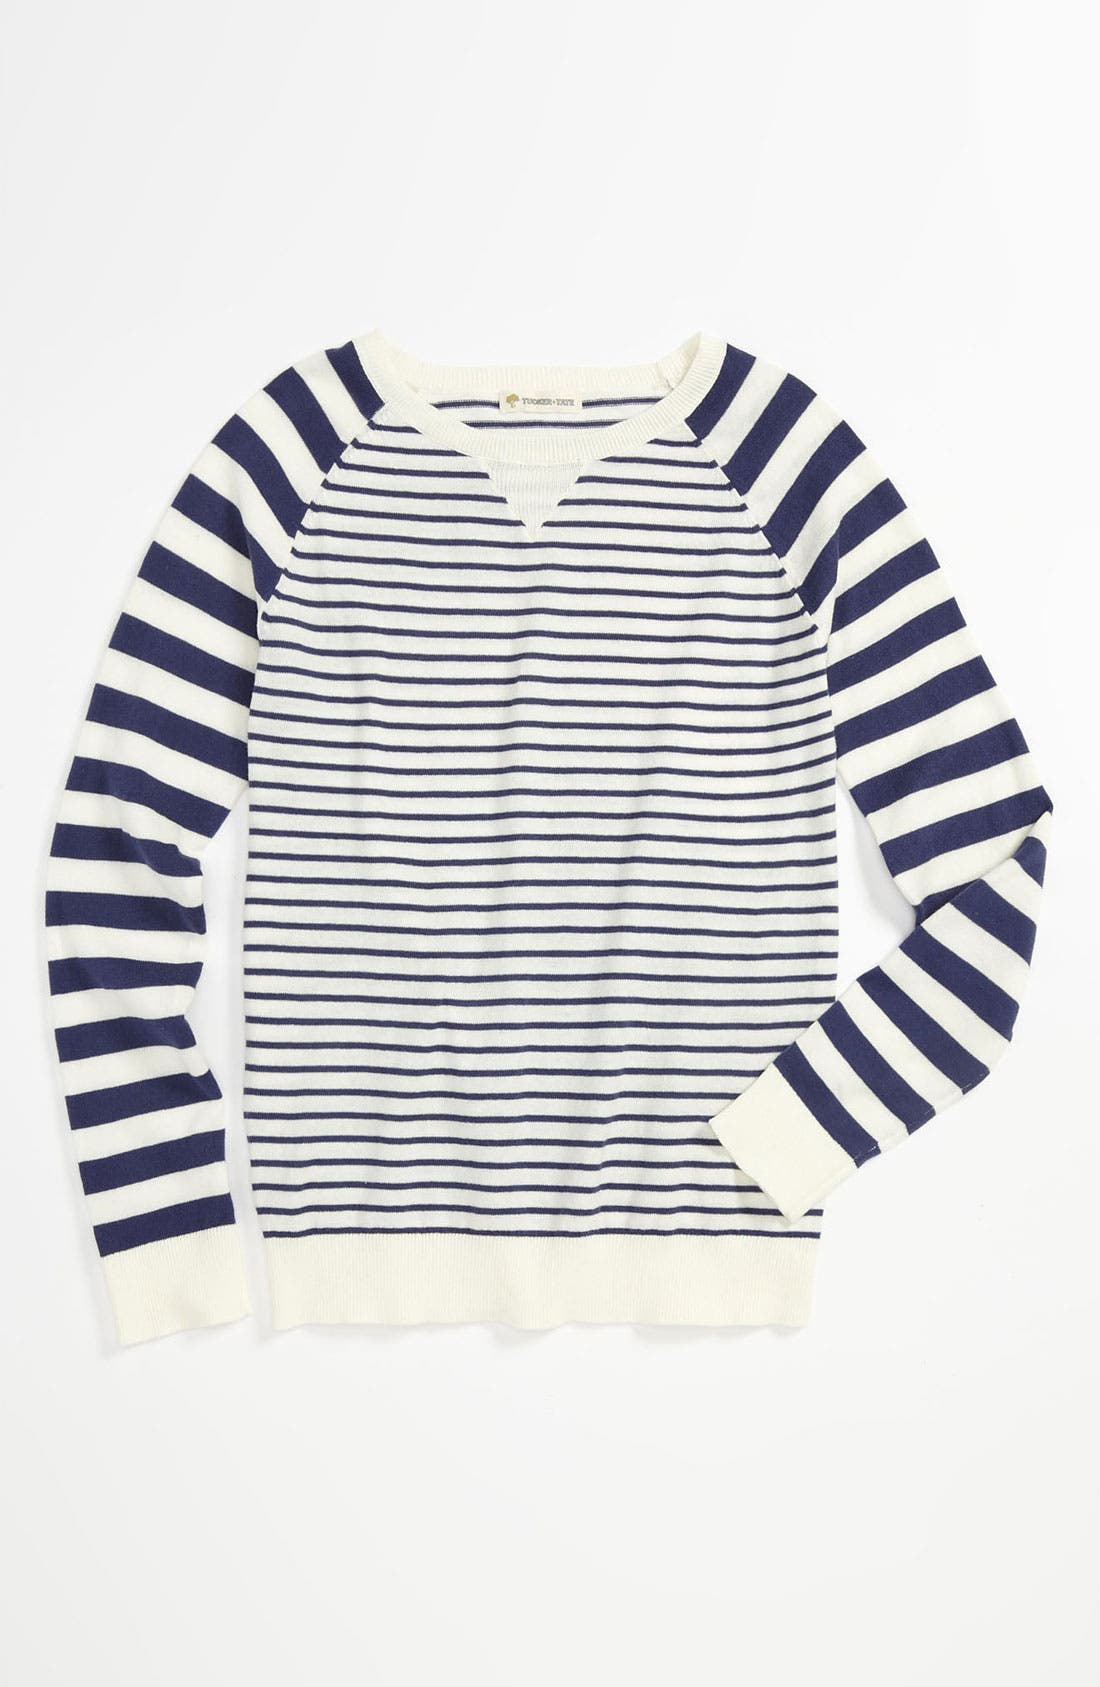 Alternate Image 1 Selected - Tucker + Tate 'Annalise' Stripe Sweater (Big Girls)